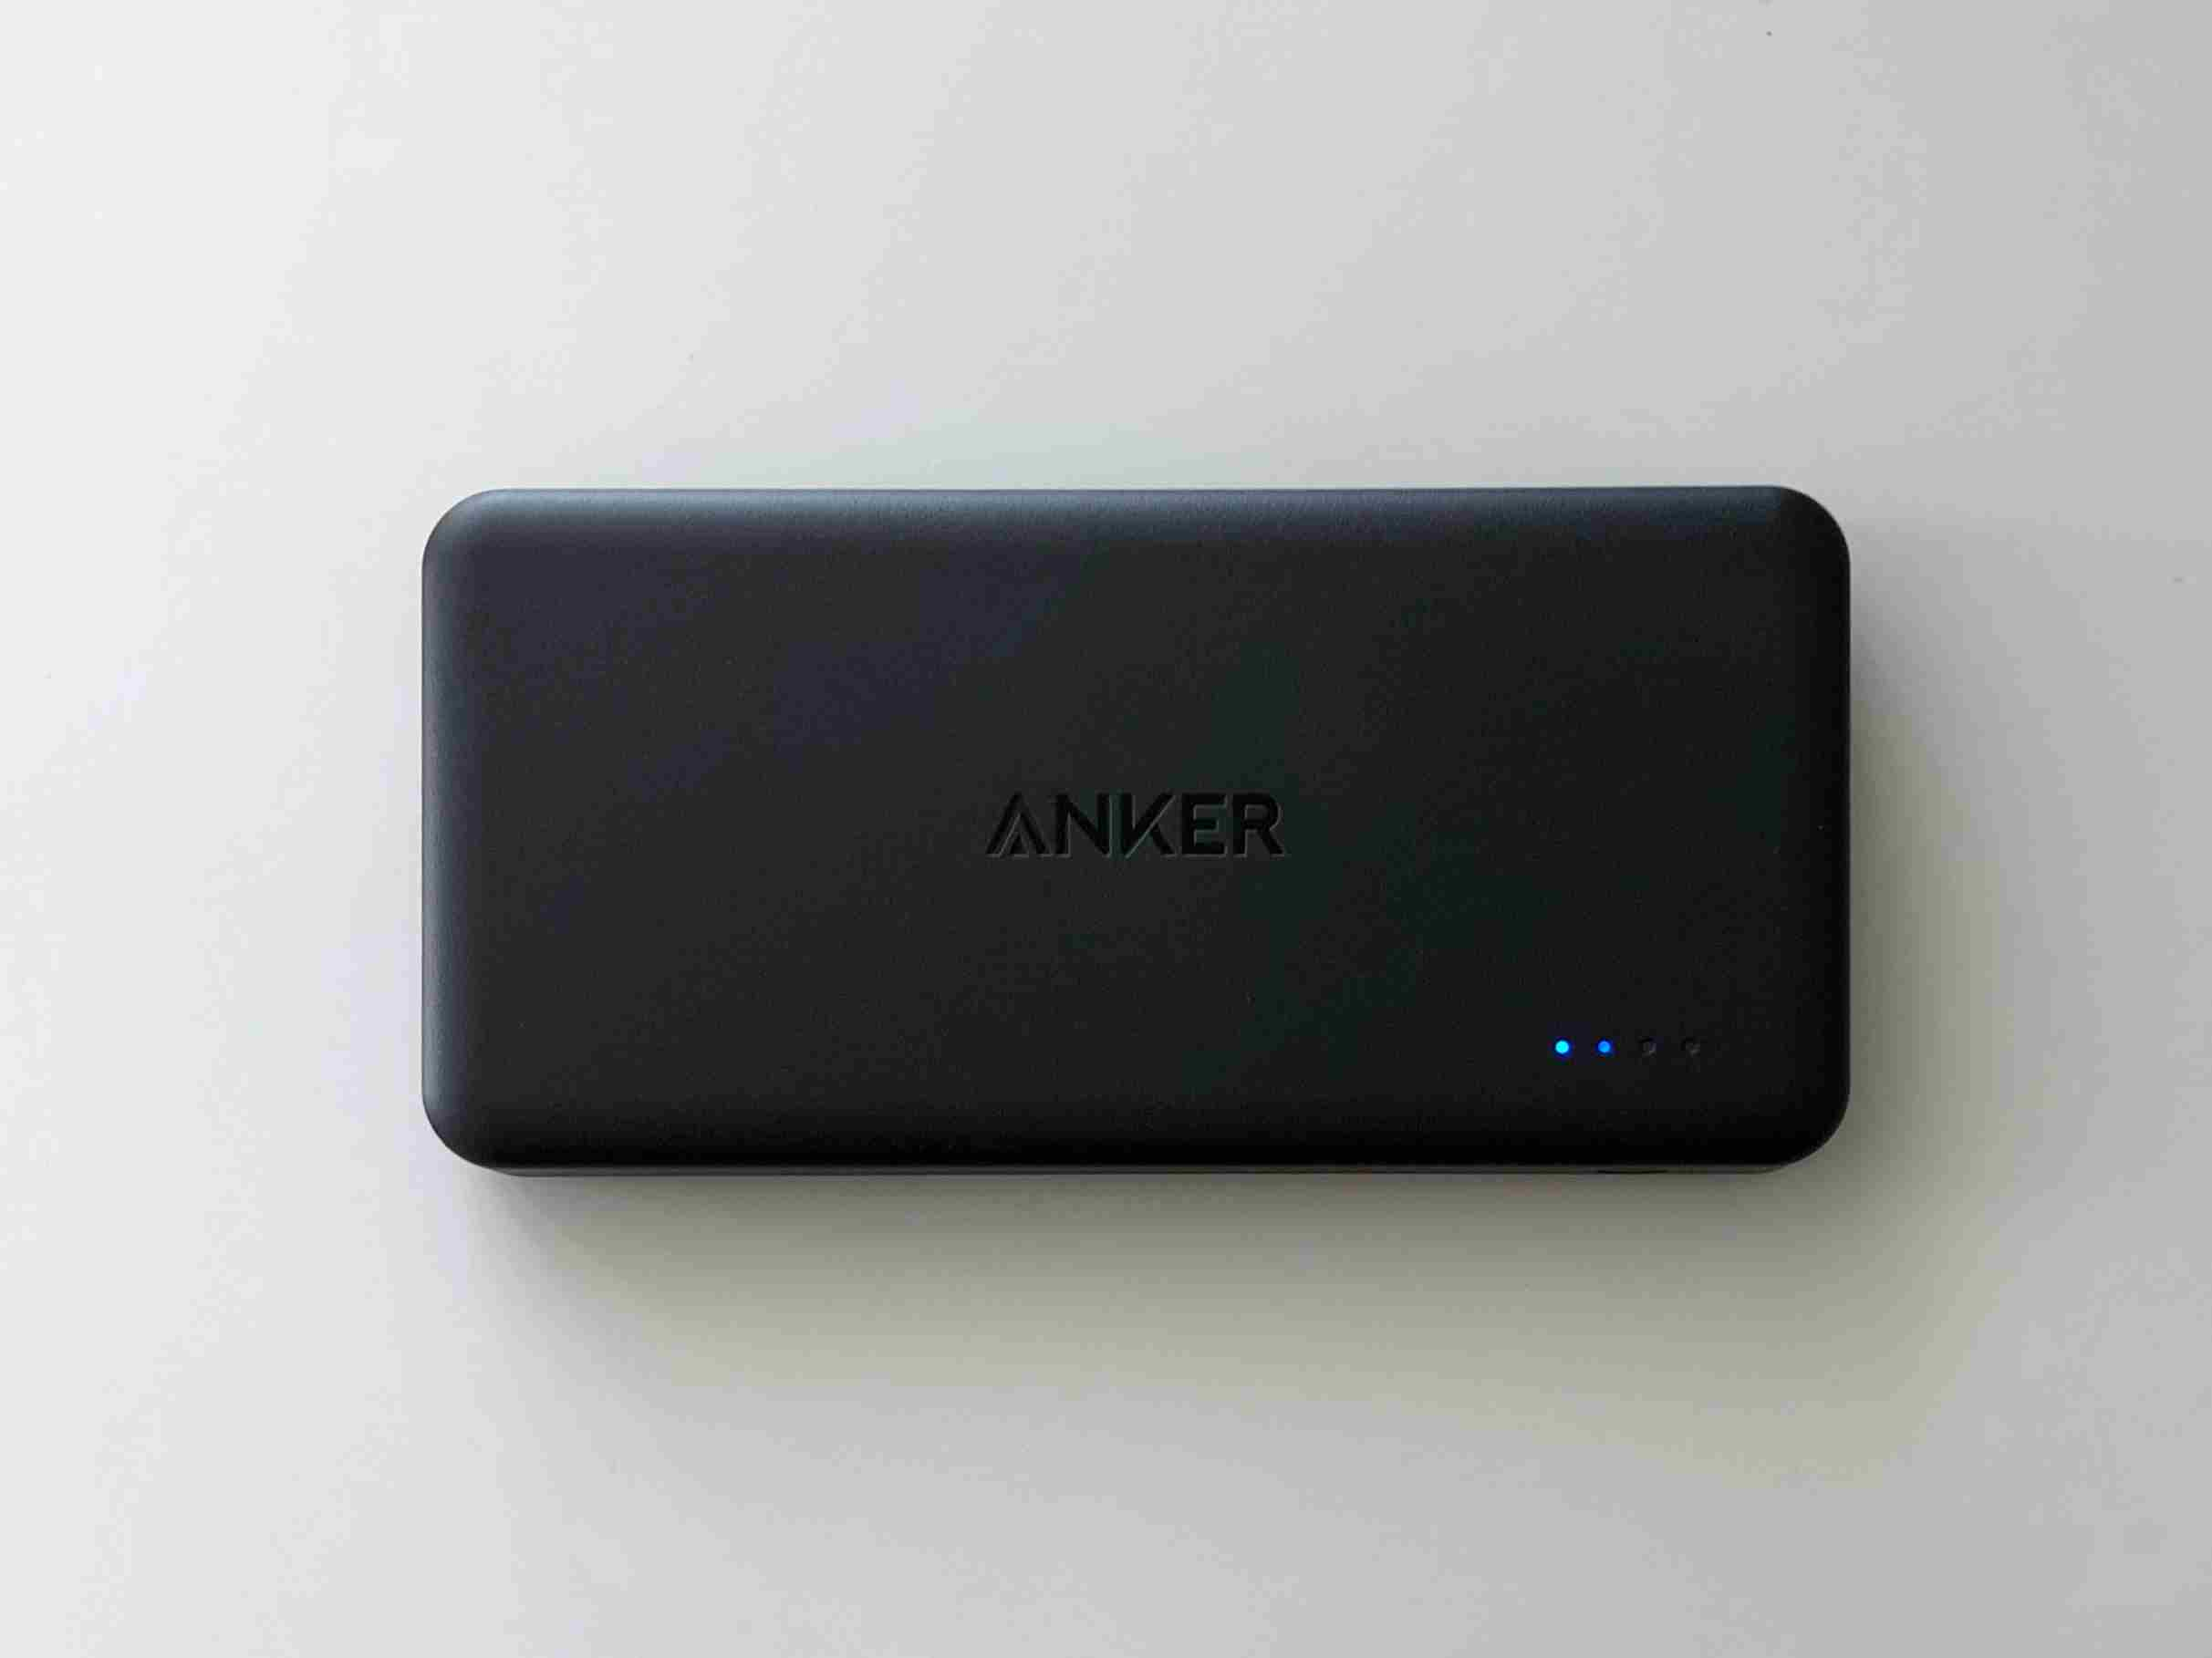 Front of the powerbank